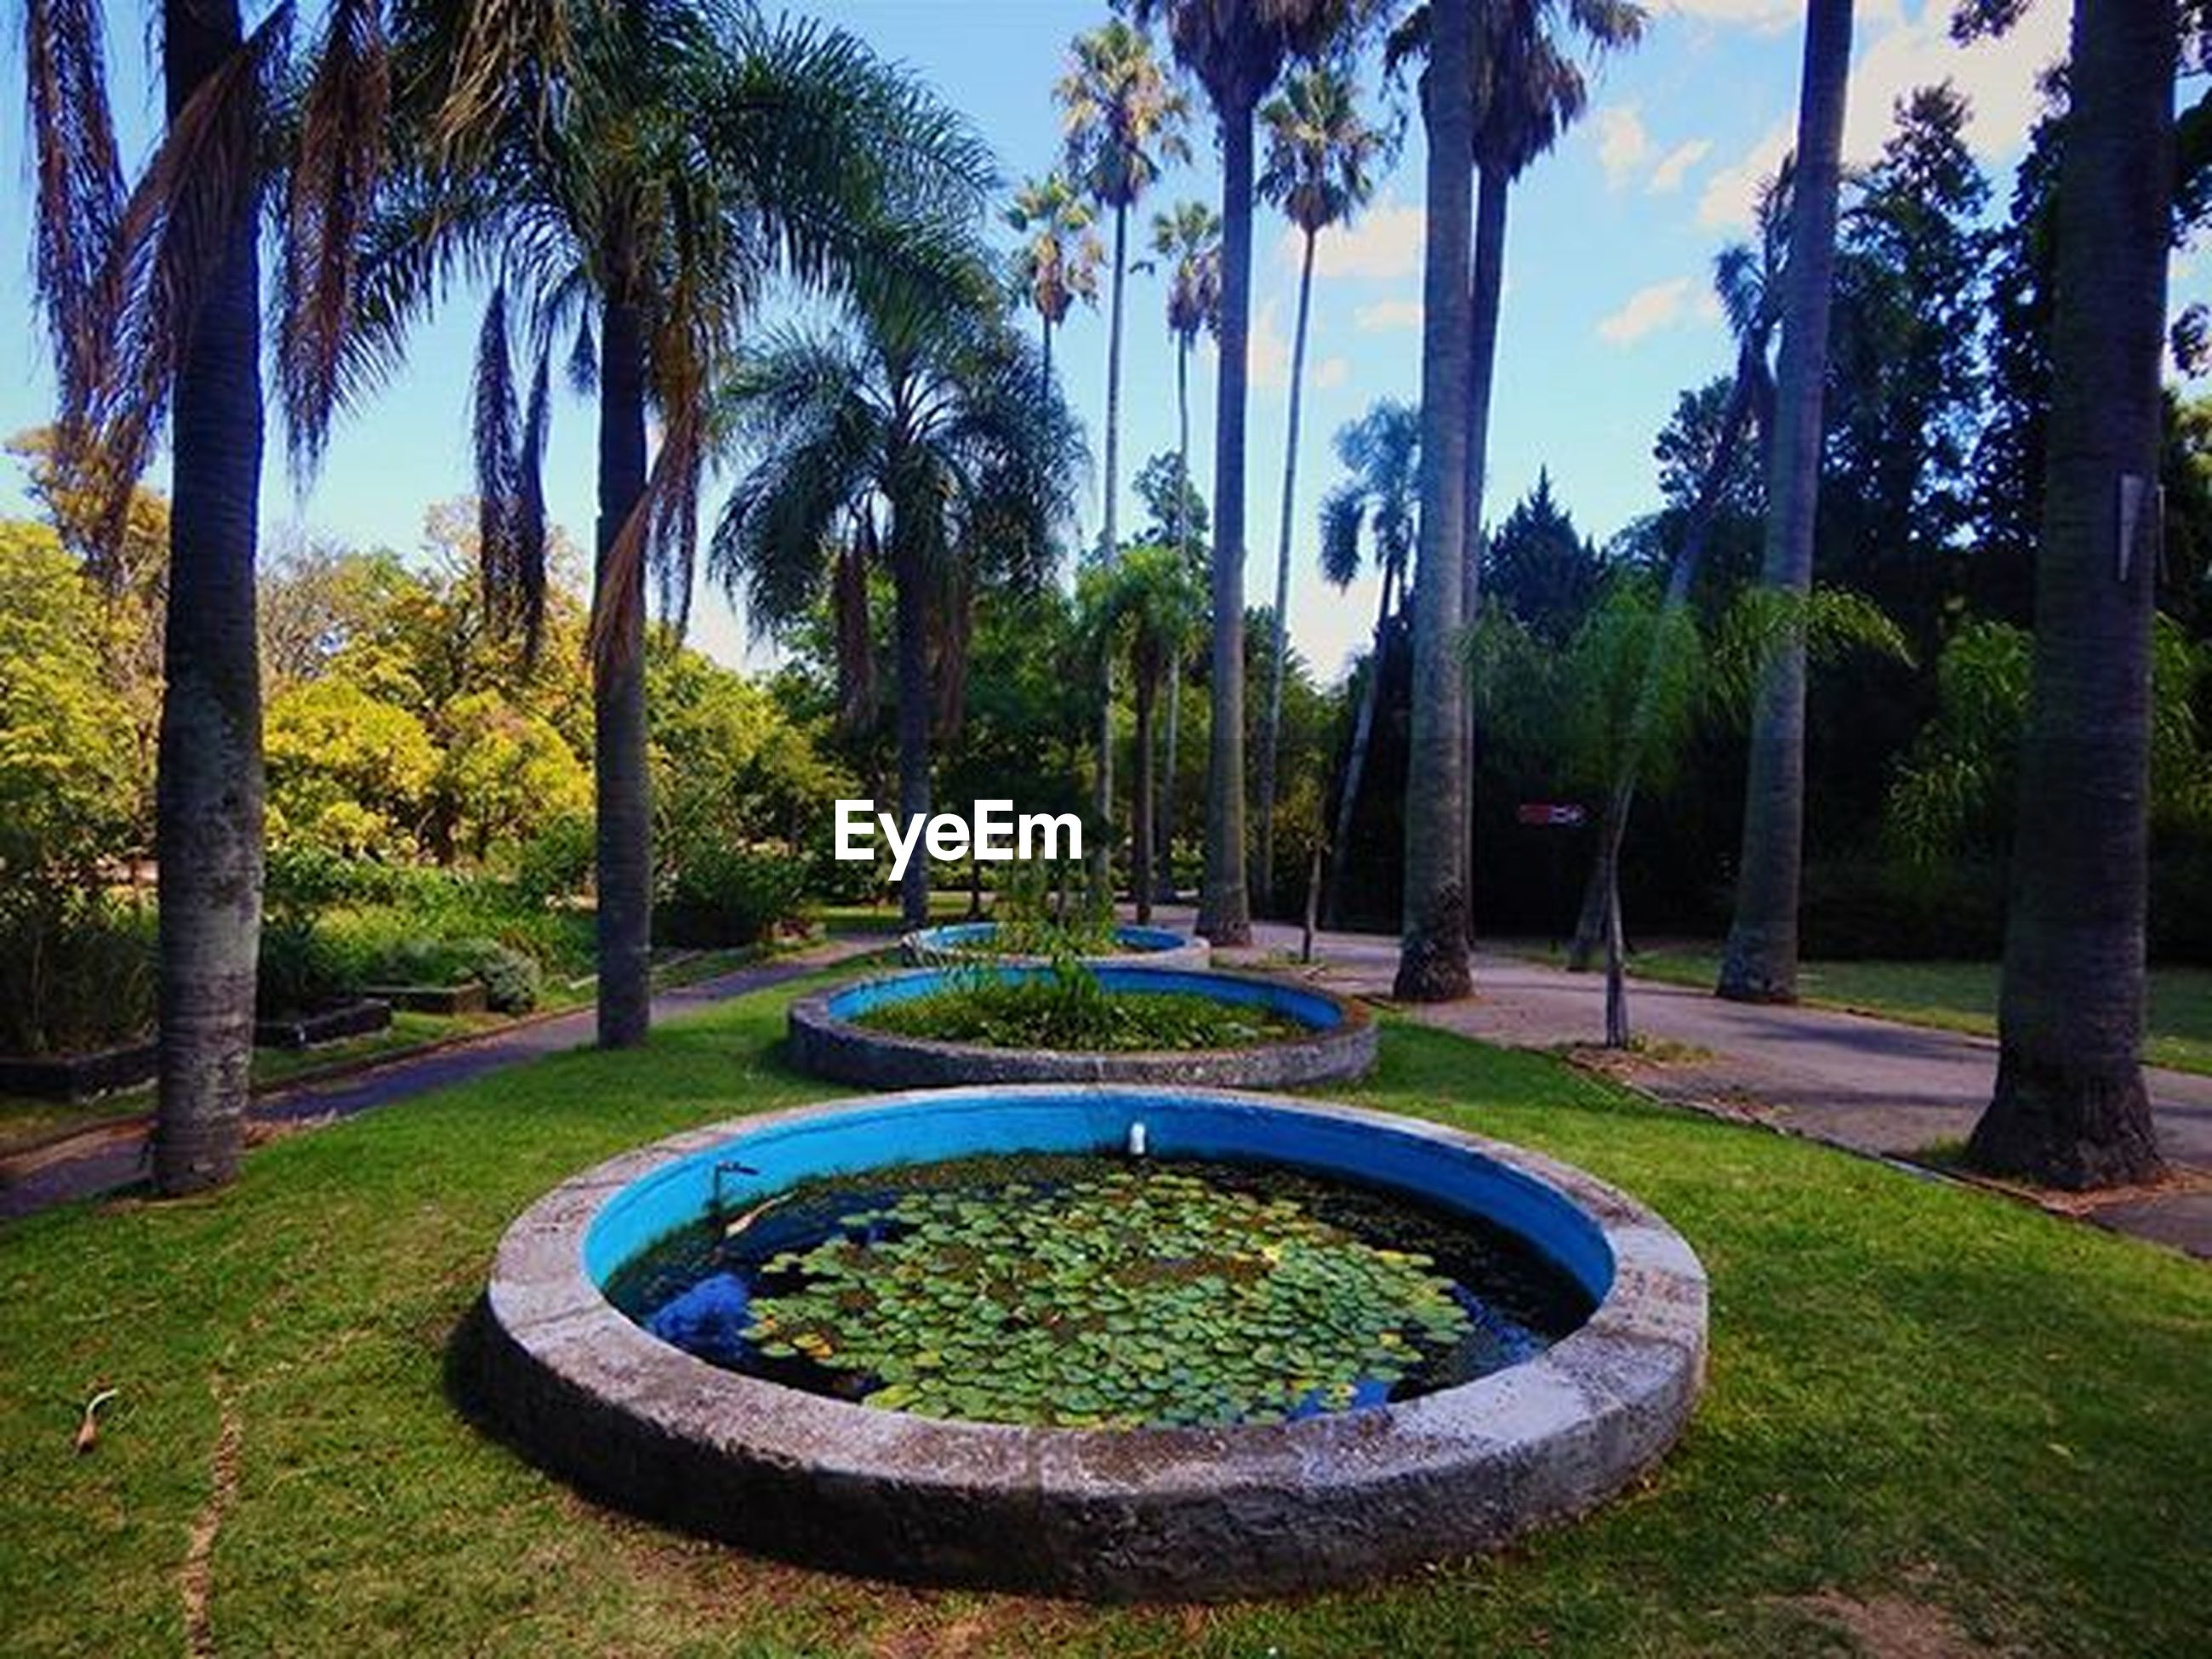 tree, palm tree, growth, park - man made space, water, green color, grass, nature, tree trunk, tranquility, beauty in nature, plant, sunlight, formal garden, fountain, park, tranquil scene, day, scenics, outdoors